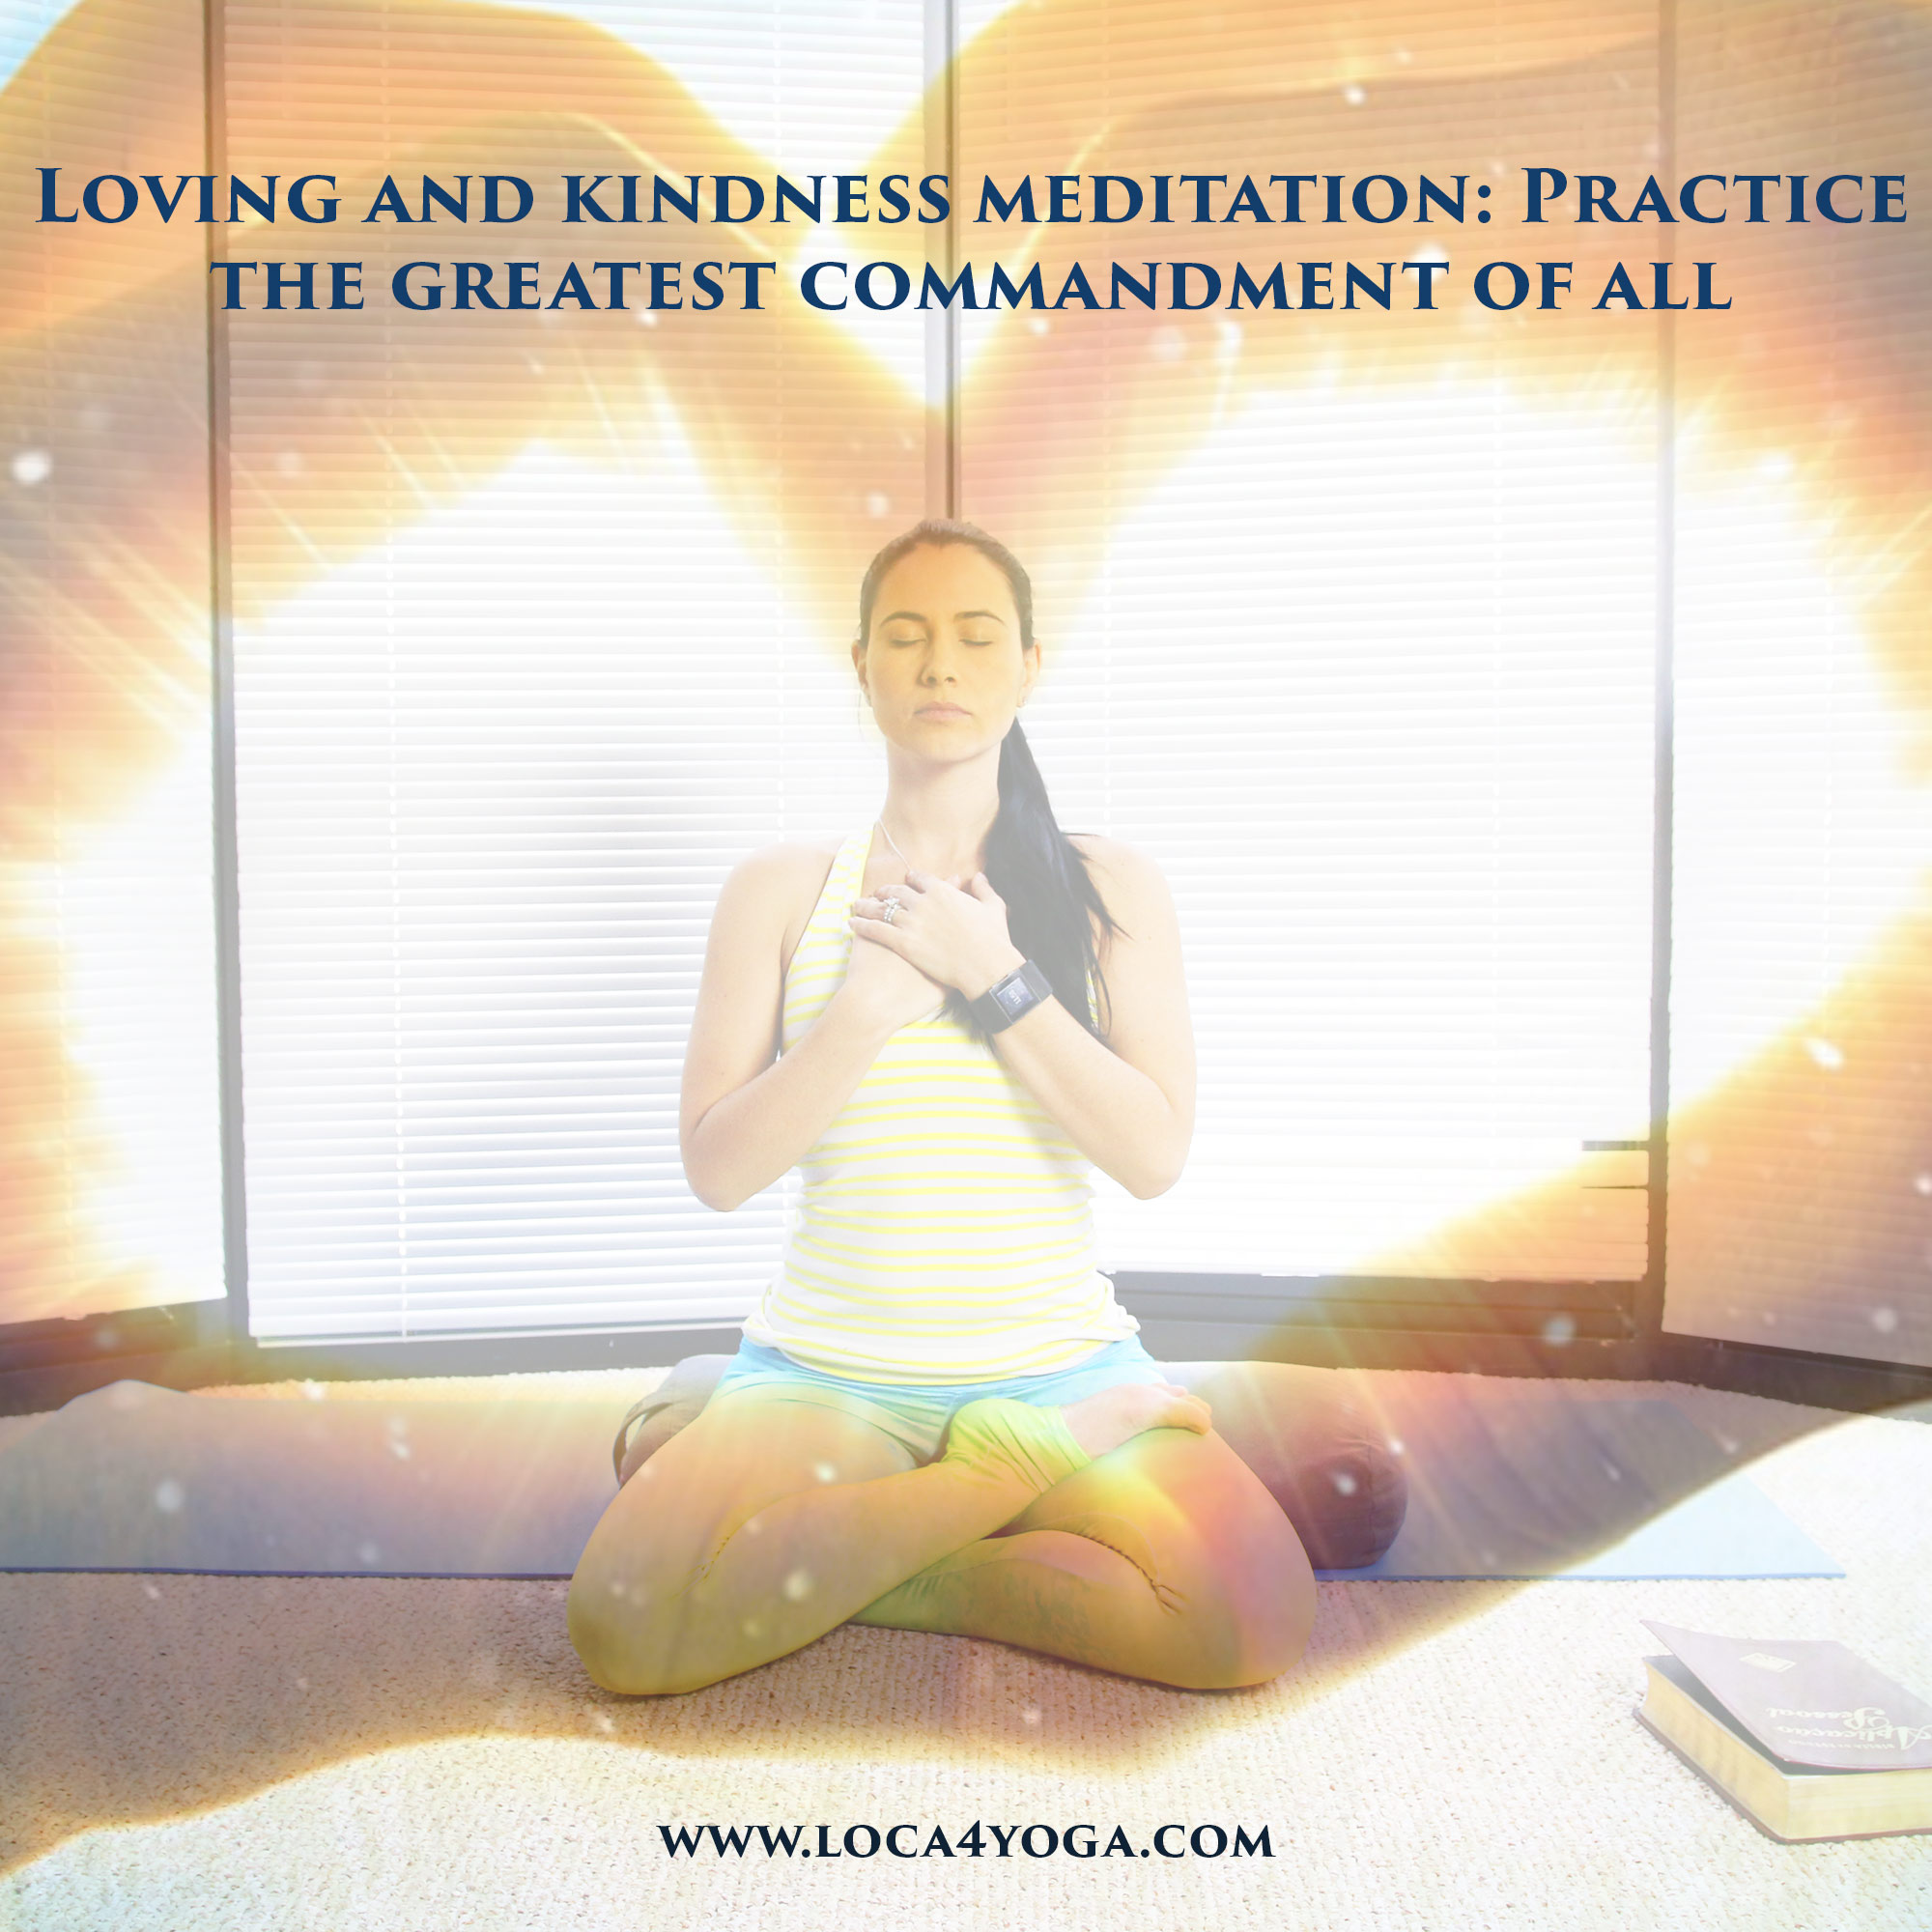 Spend some time in God's love. Practice loving and kindness meditation today!